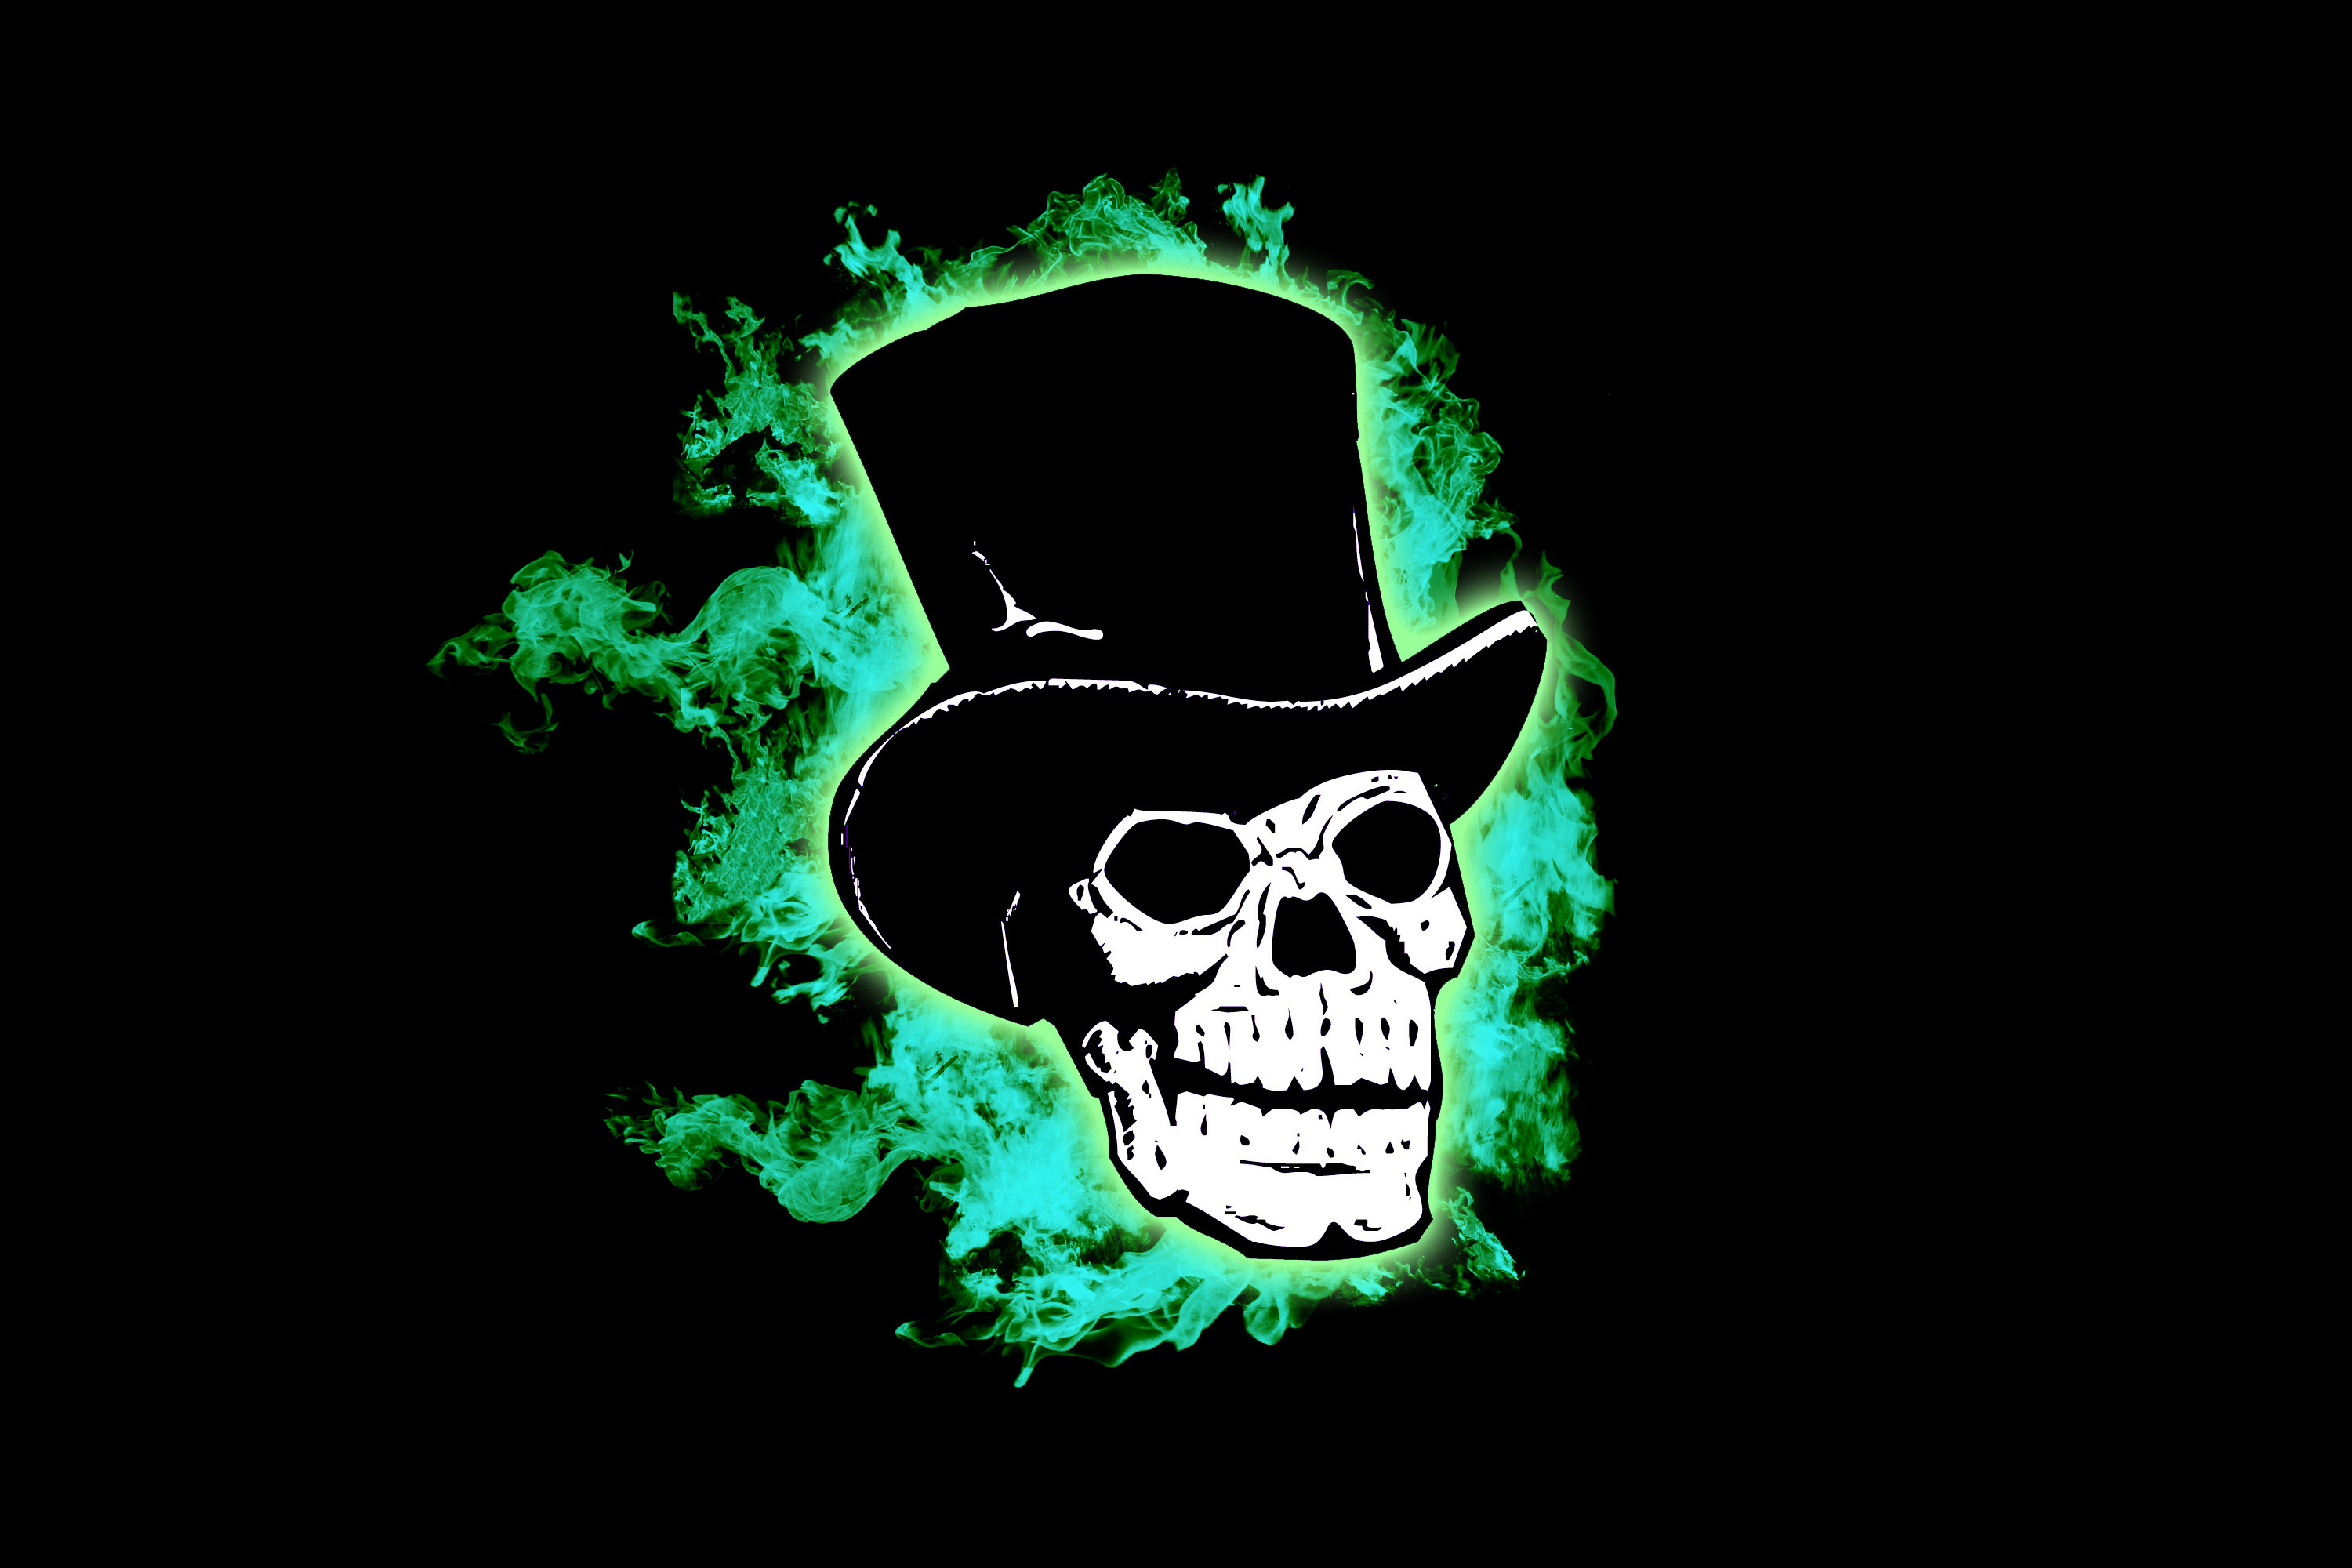 skull in a wearing a black top hat, with green ghostly flames